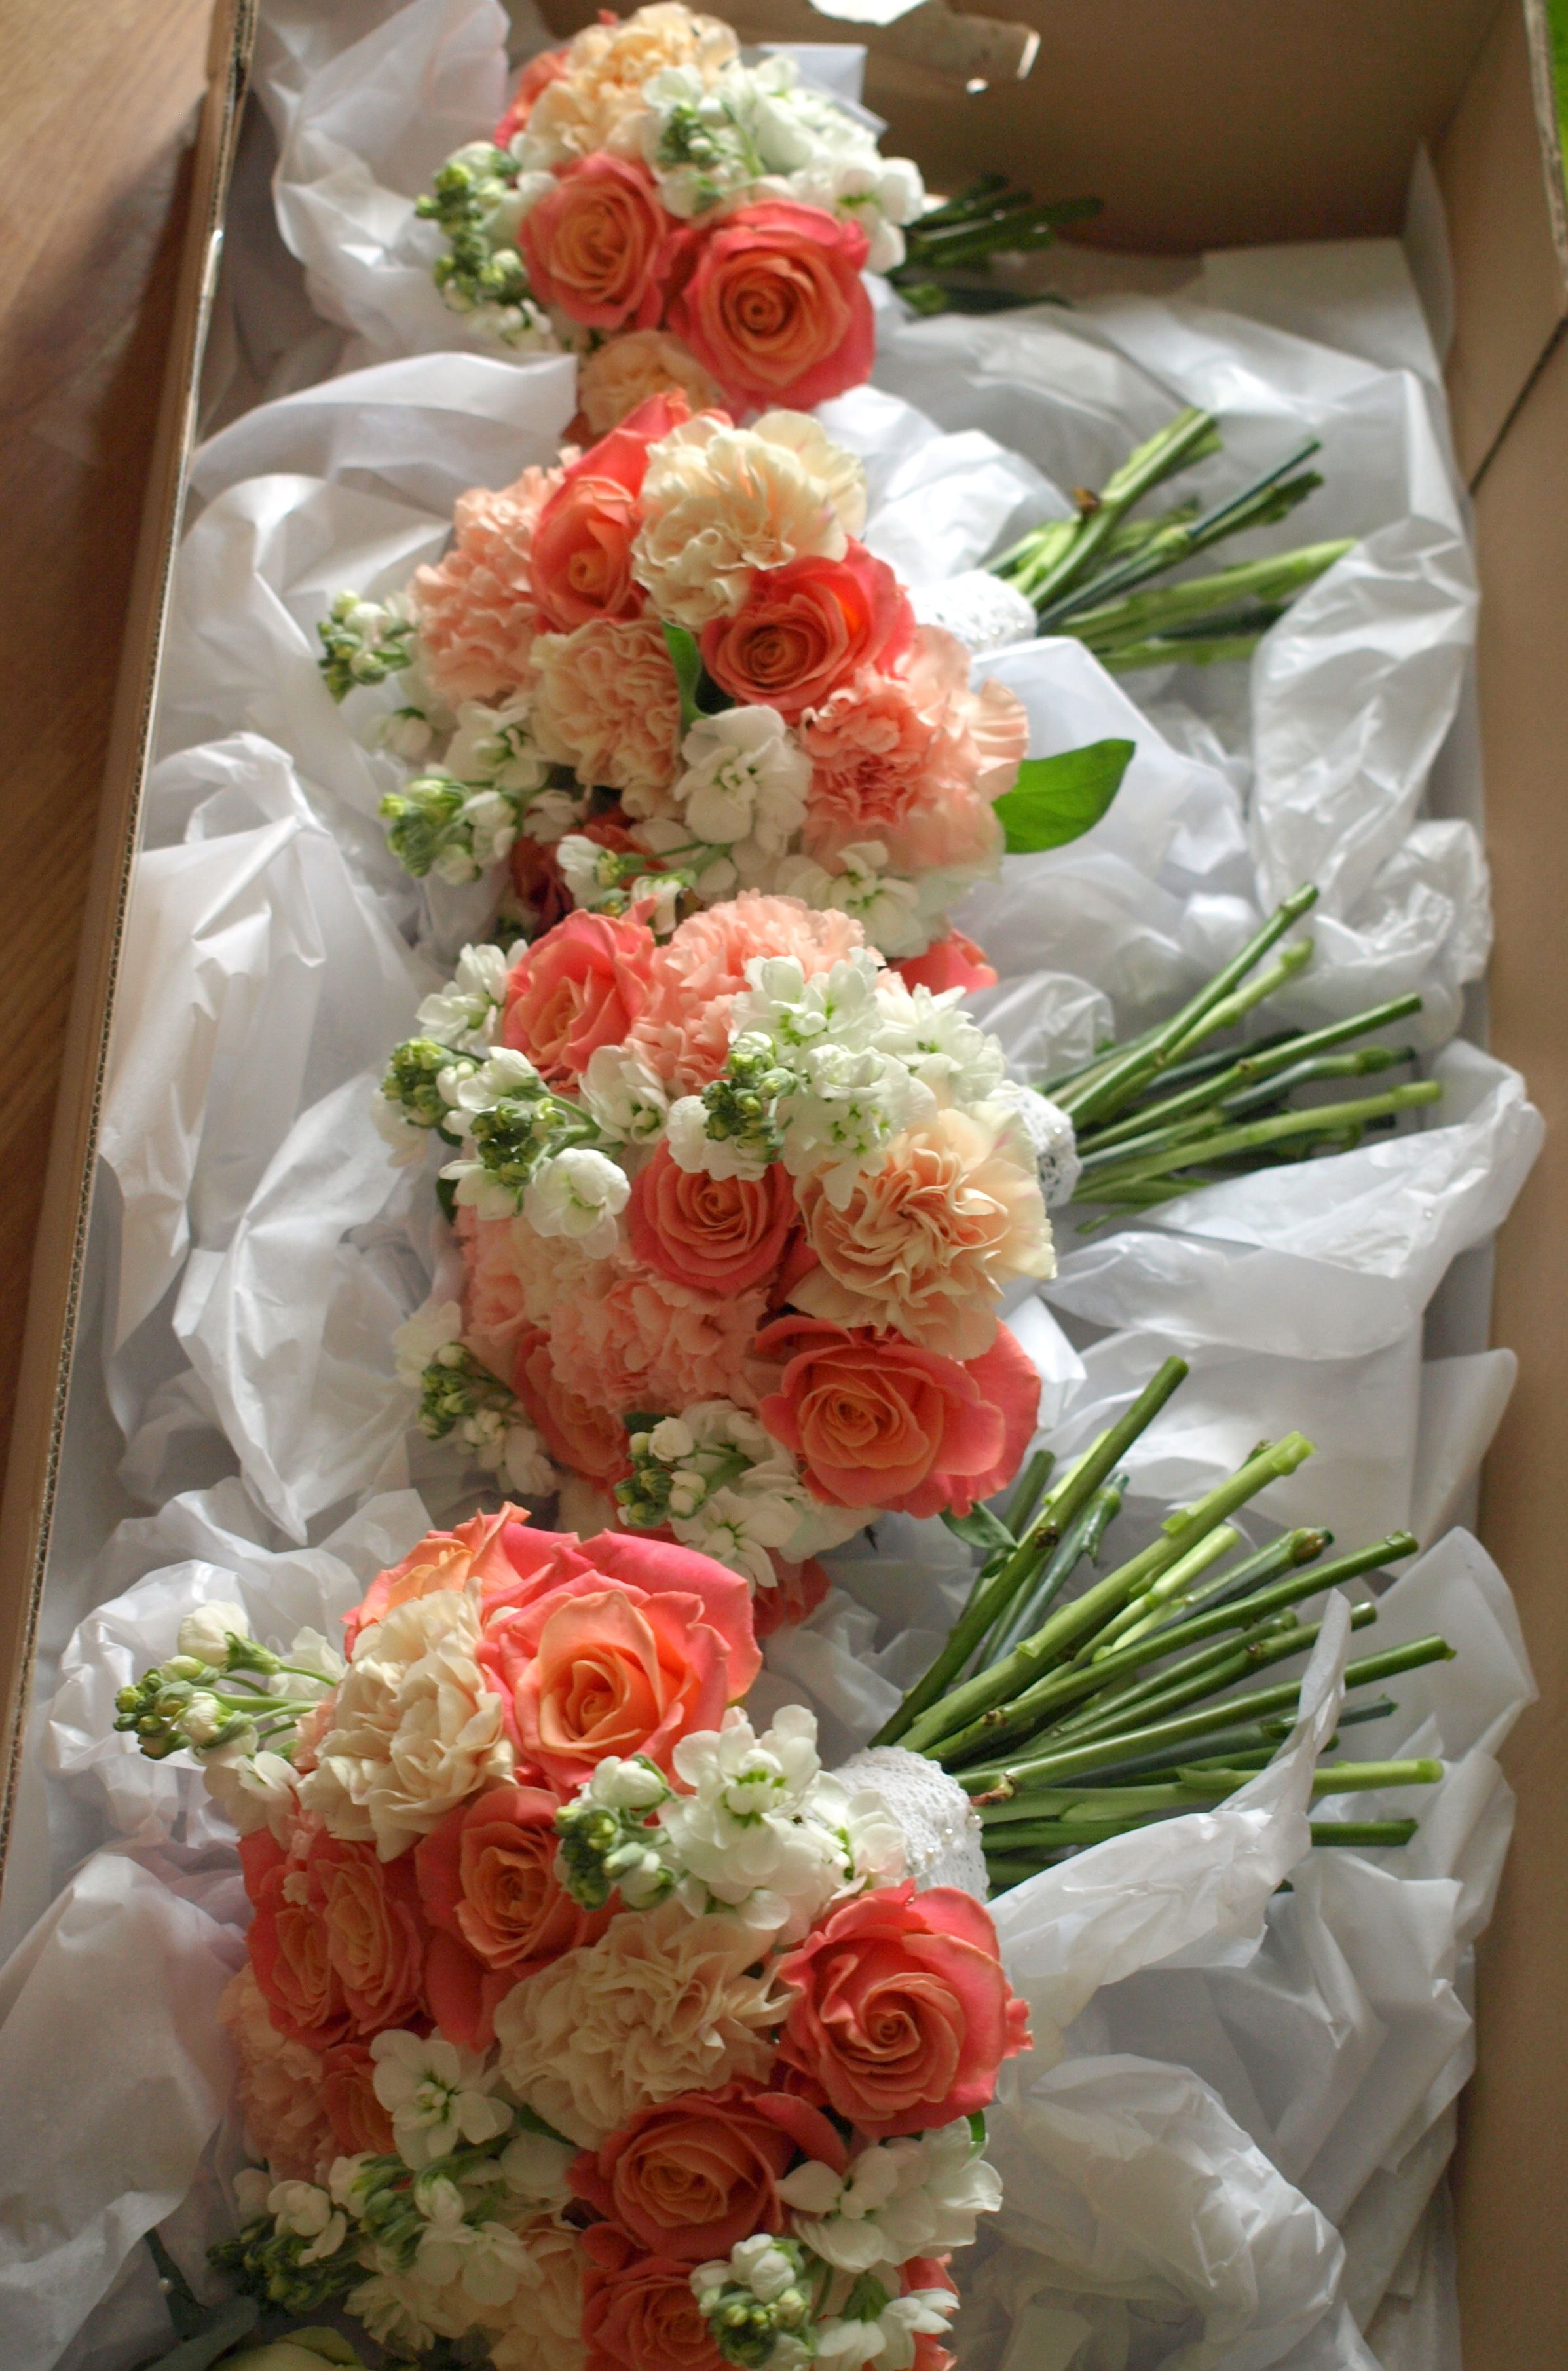 Cream Chair Covers For Weddings Wedding Hire Cambridgeshire Miss Piggy Roses, Carnations And Stocks - By Bows & Blooms Peach, White, Coral | Dream ...